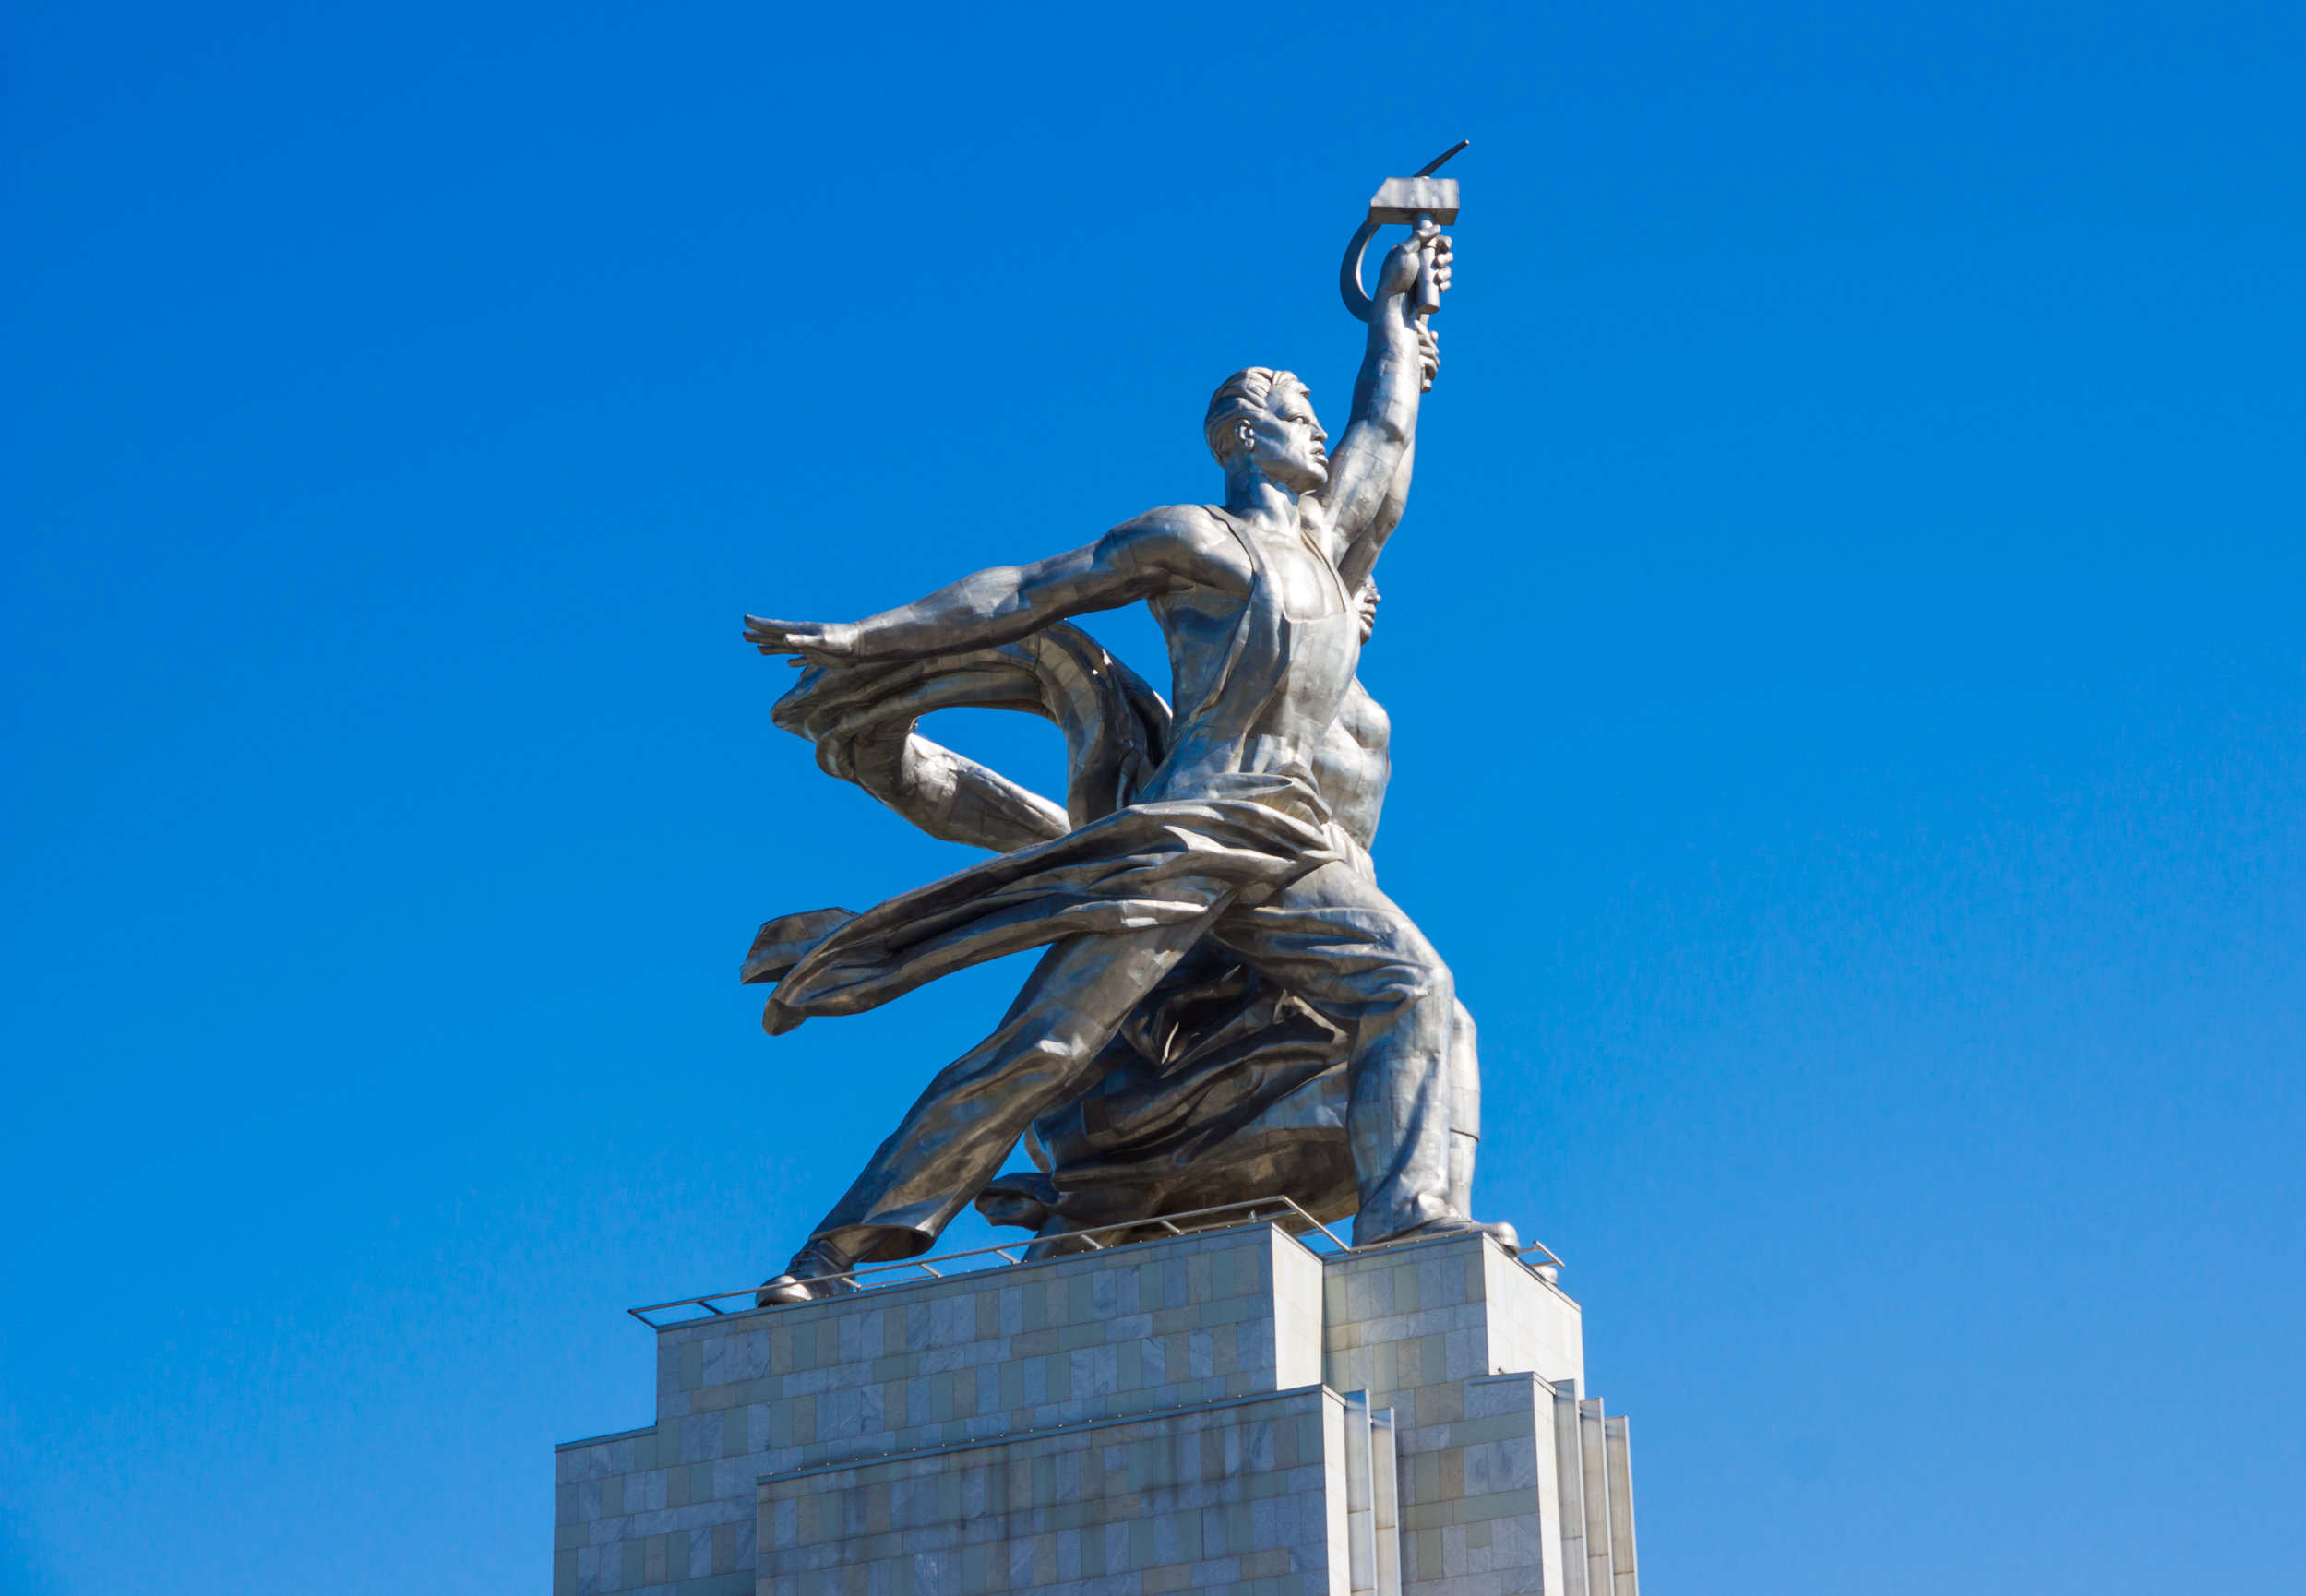 Monument worker and kolkhoz woman (former VDNKh, ВДНХ)